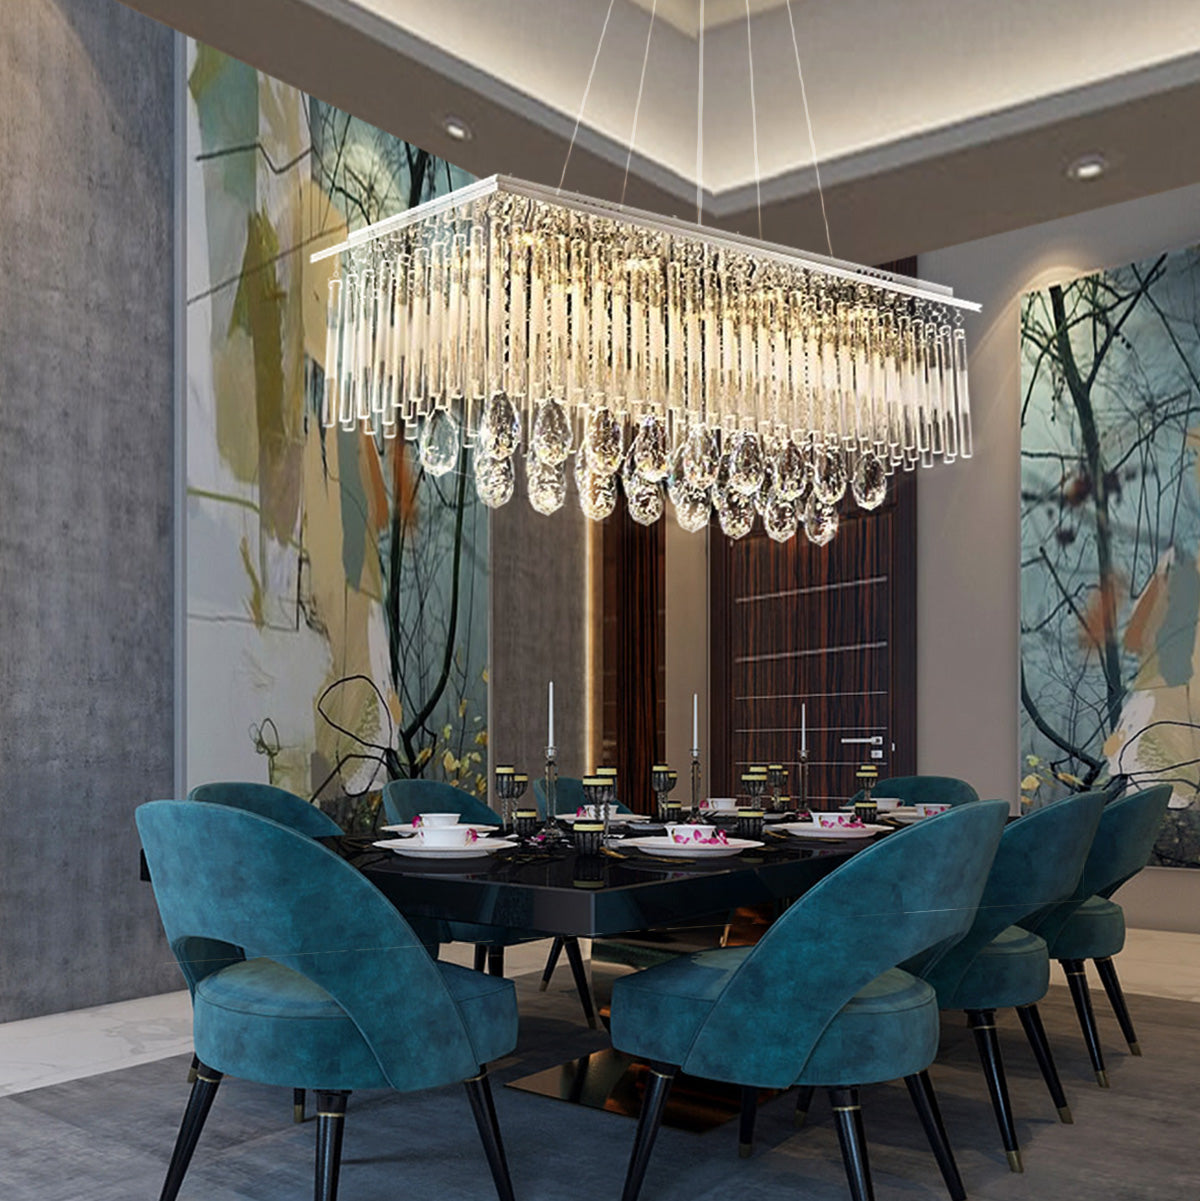 Rectangular Crystal Chandelier with Frosted Crystal Rods - Dining Room